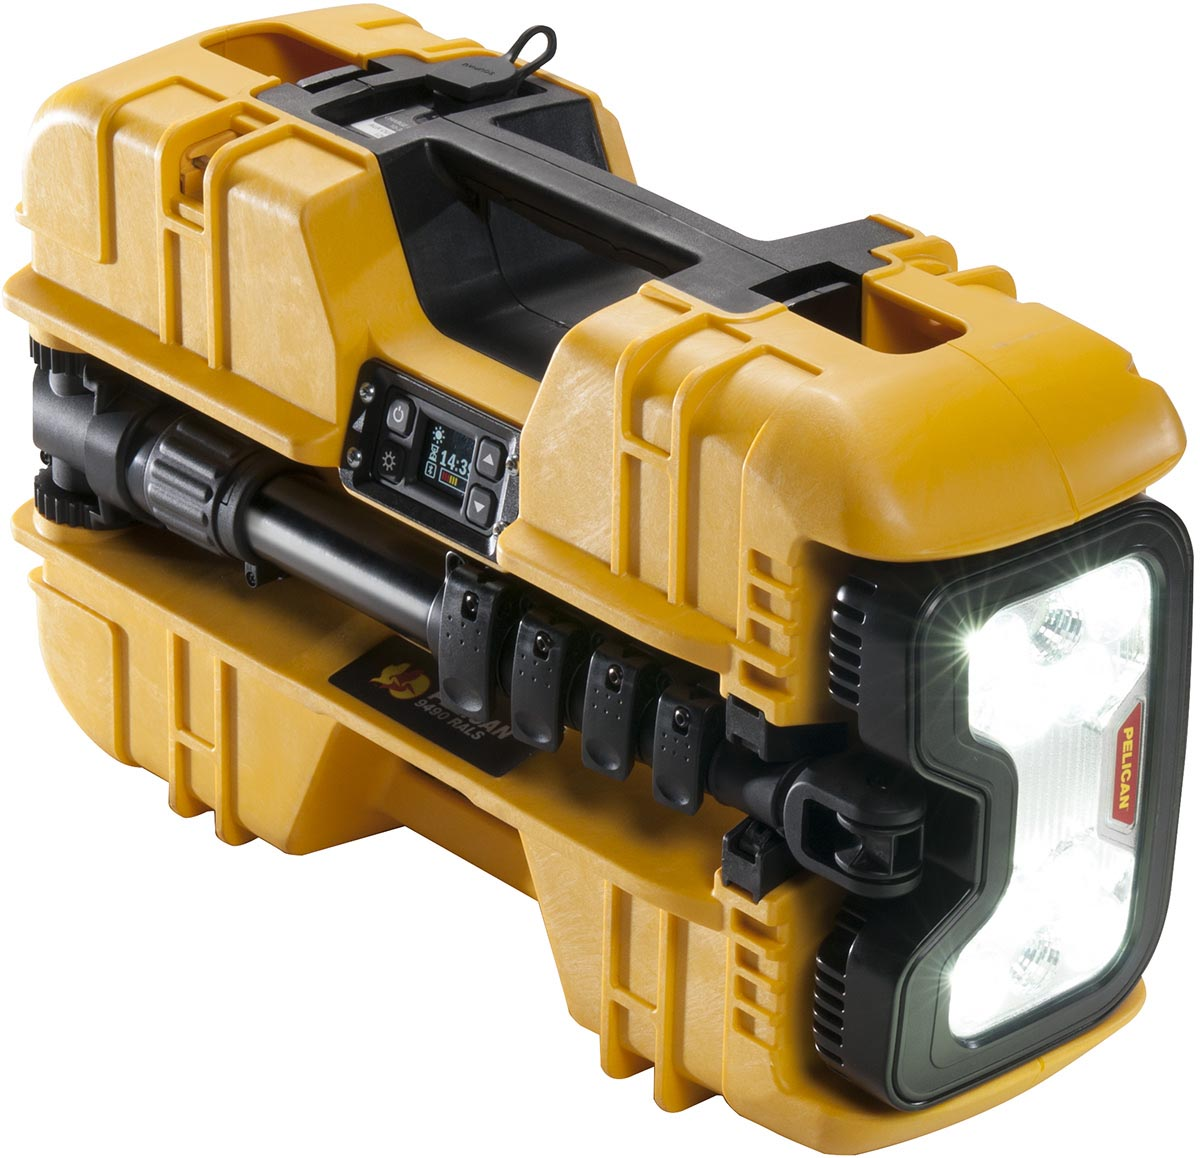 pelican peli products 9490 brightest lumens portable spotlight